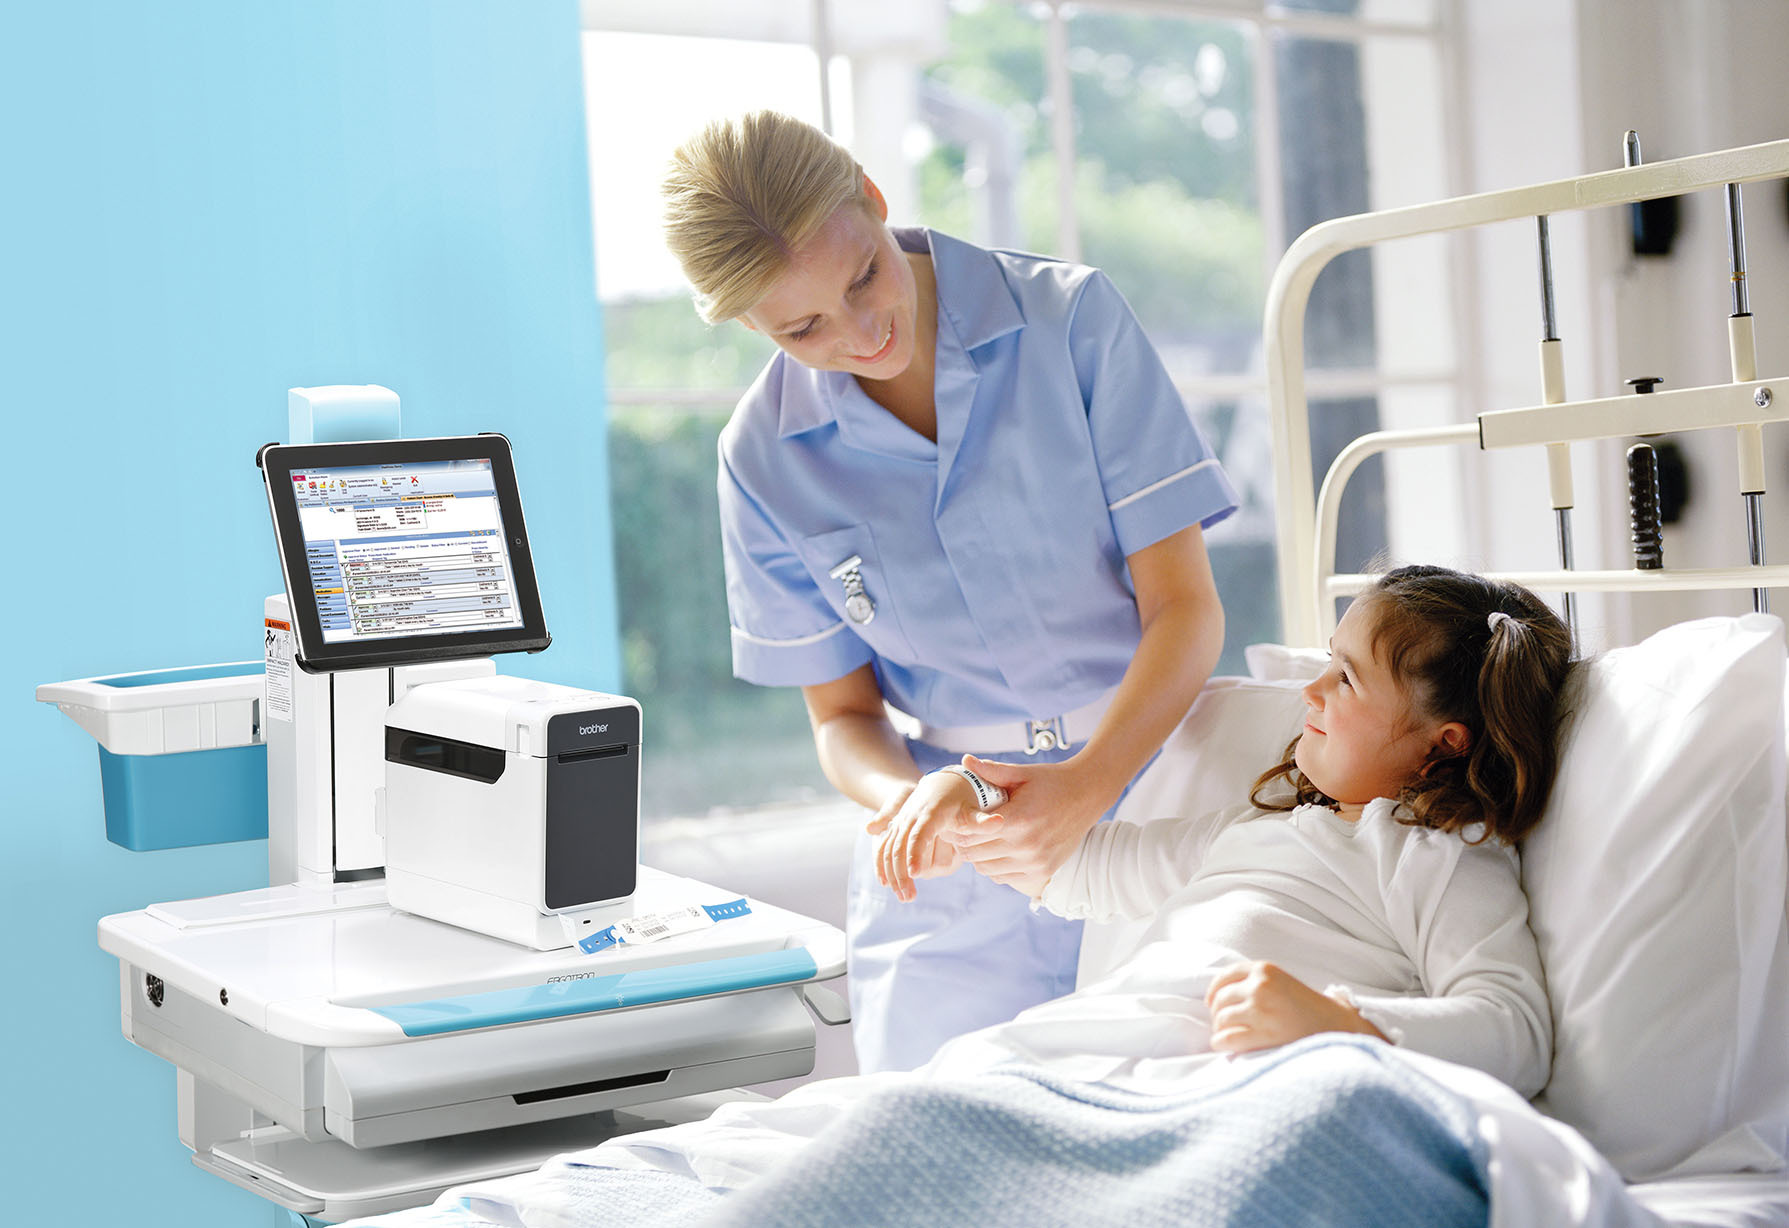 Brother mobile solutions to showcase its cerner certified patient full size xflitez Image collections